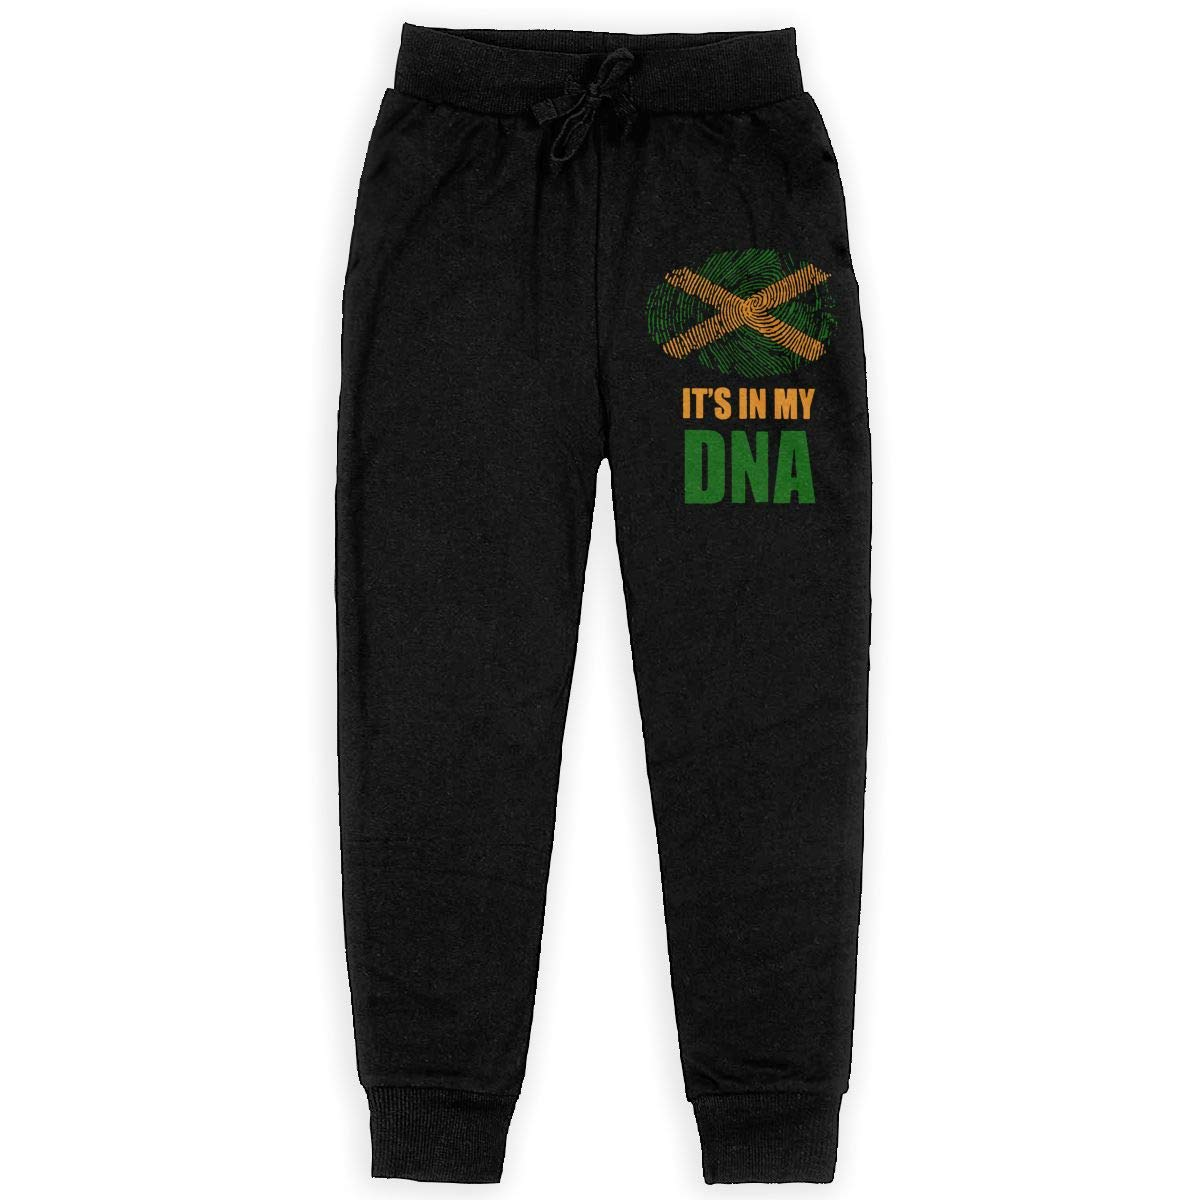 Jamaican Its in My DNA Soft//Cozy Sweatpants Boys Active Basic Jogger Fleece Pants for Teen Boy